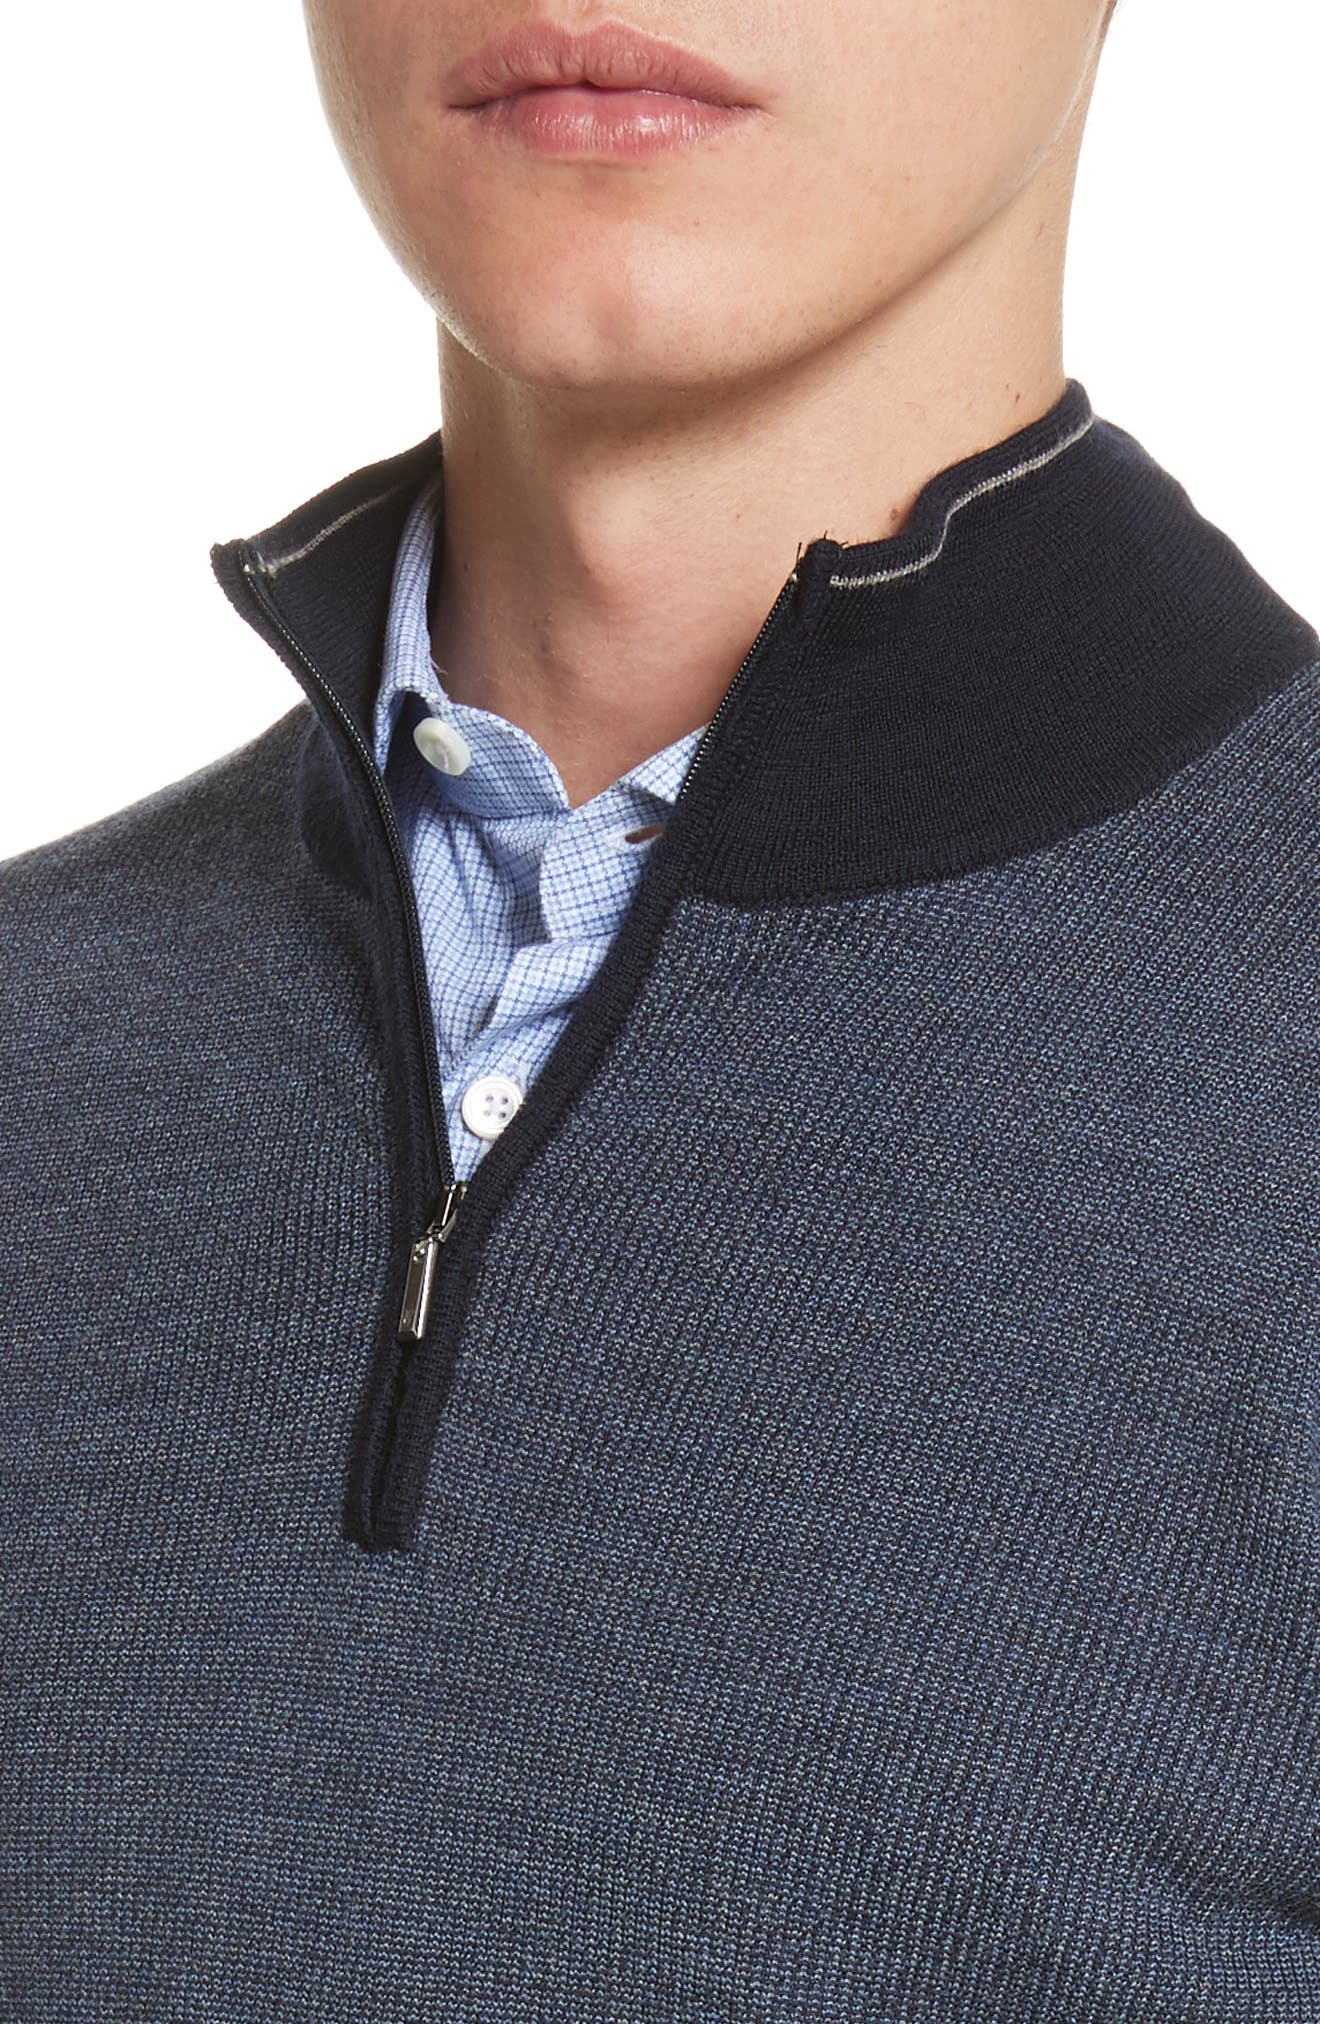 Quarter Zip Wool Sweater,                             Alternate thumbnail 4, color,                             401